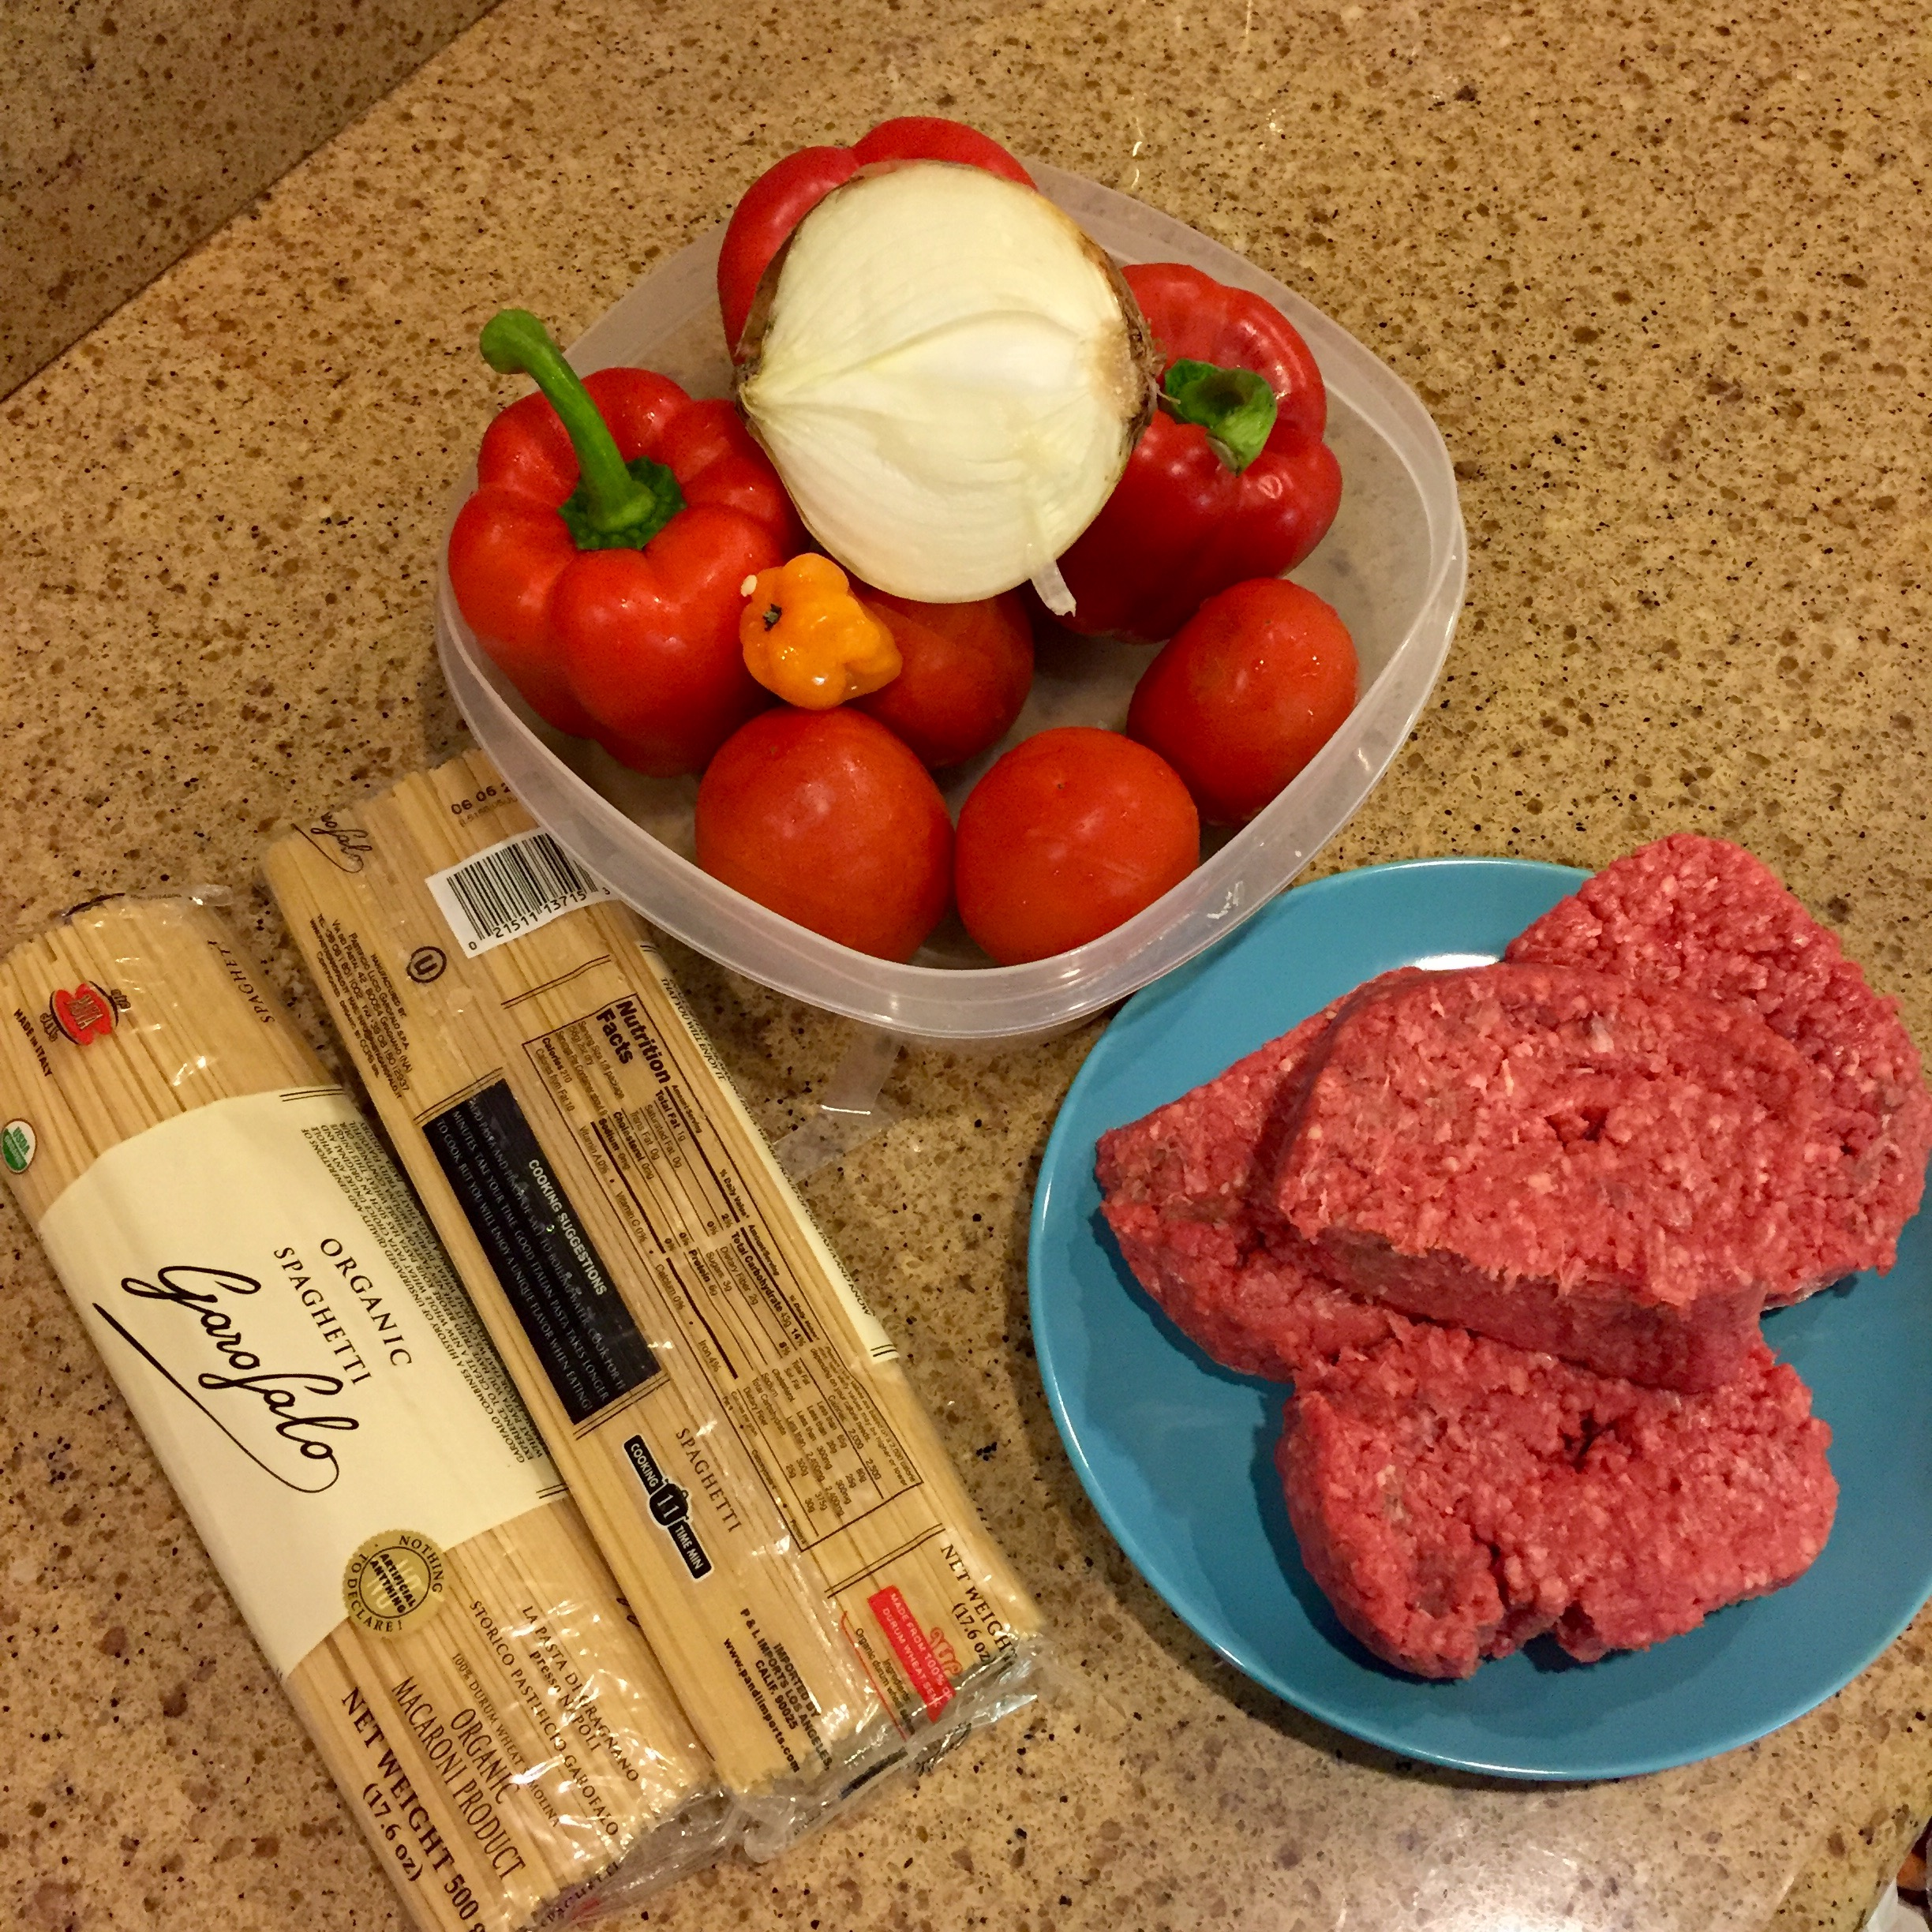 onion, red bell peppers, tomatoes, habanero, spaghetti, ground beef